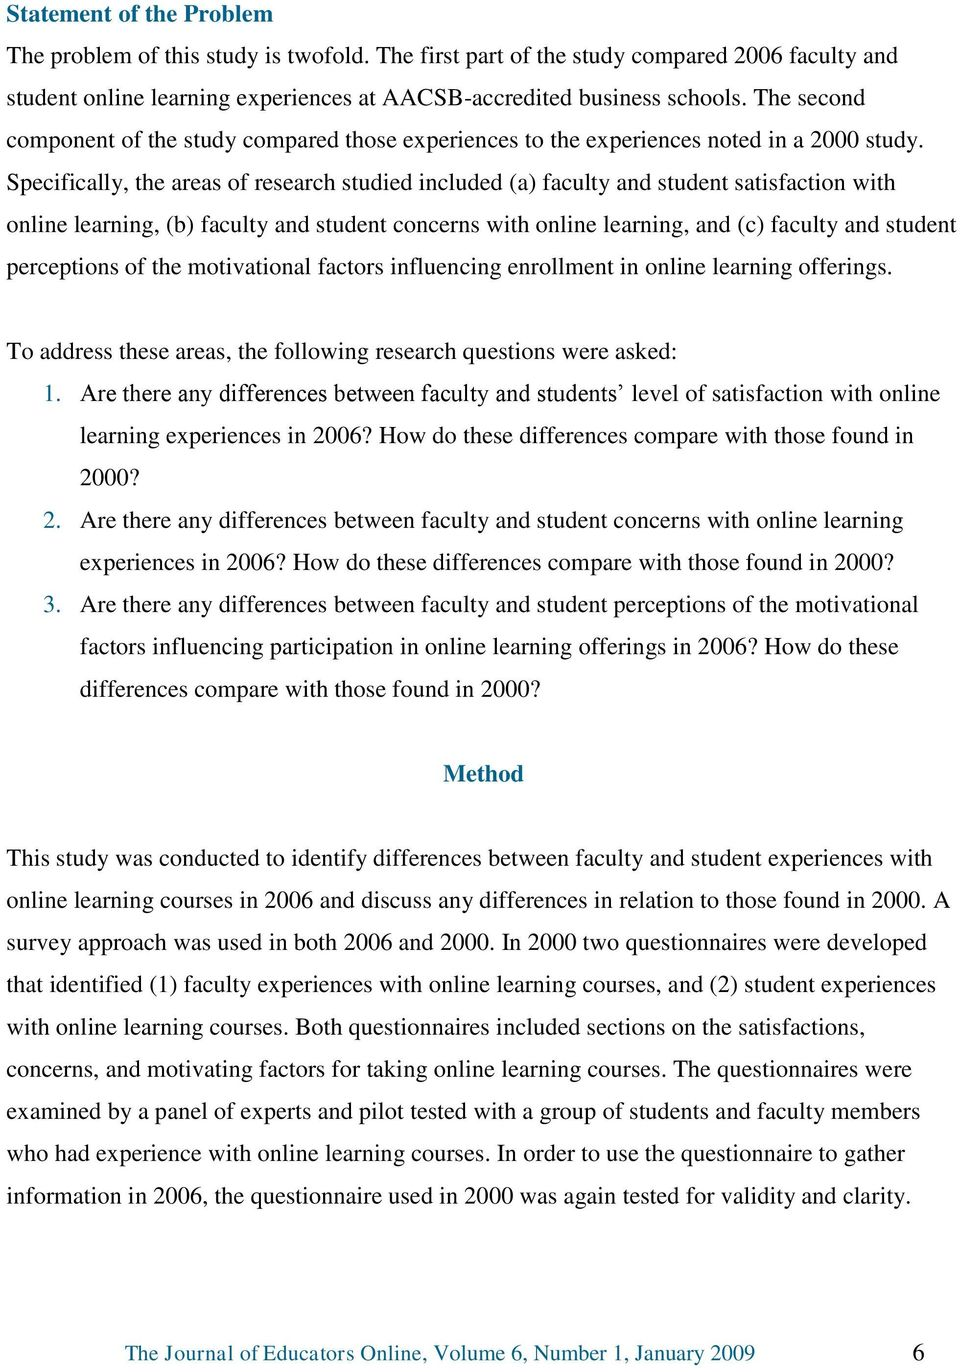 Specifically, the areas of research studied included (a) faculty and student satisfaction with online learning, (b) faculty and student concerns with online learning, and (c) faculty and student